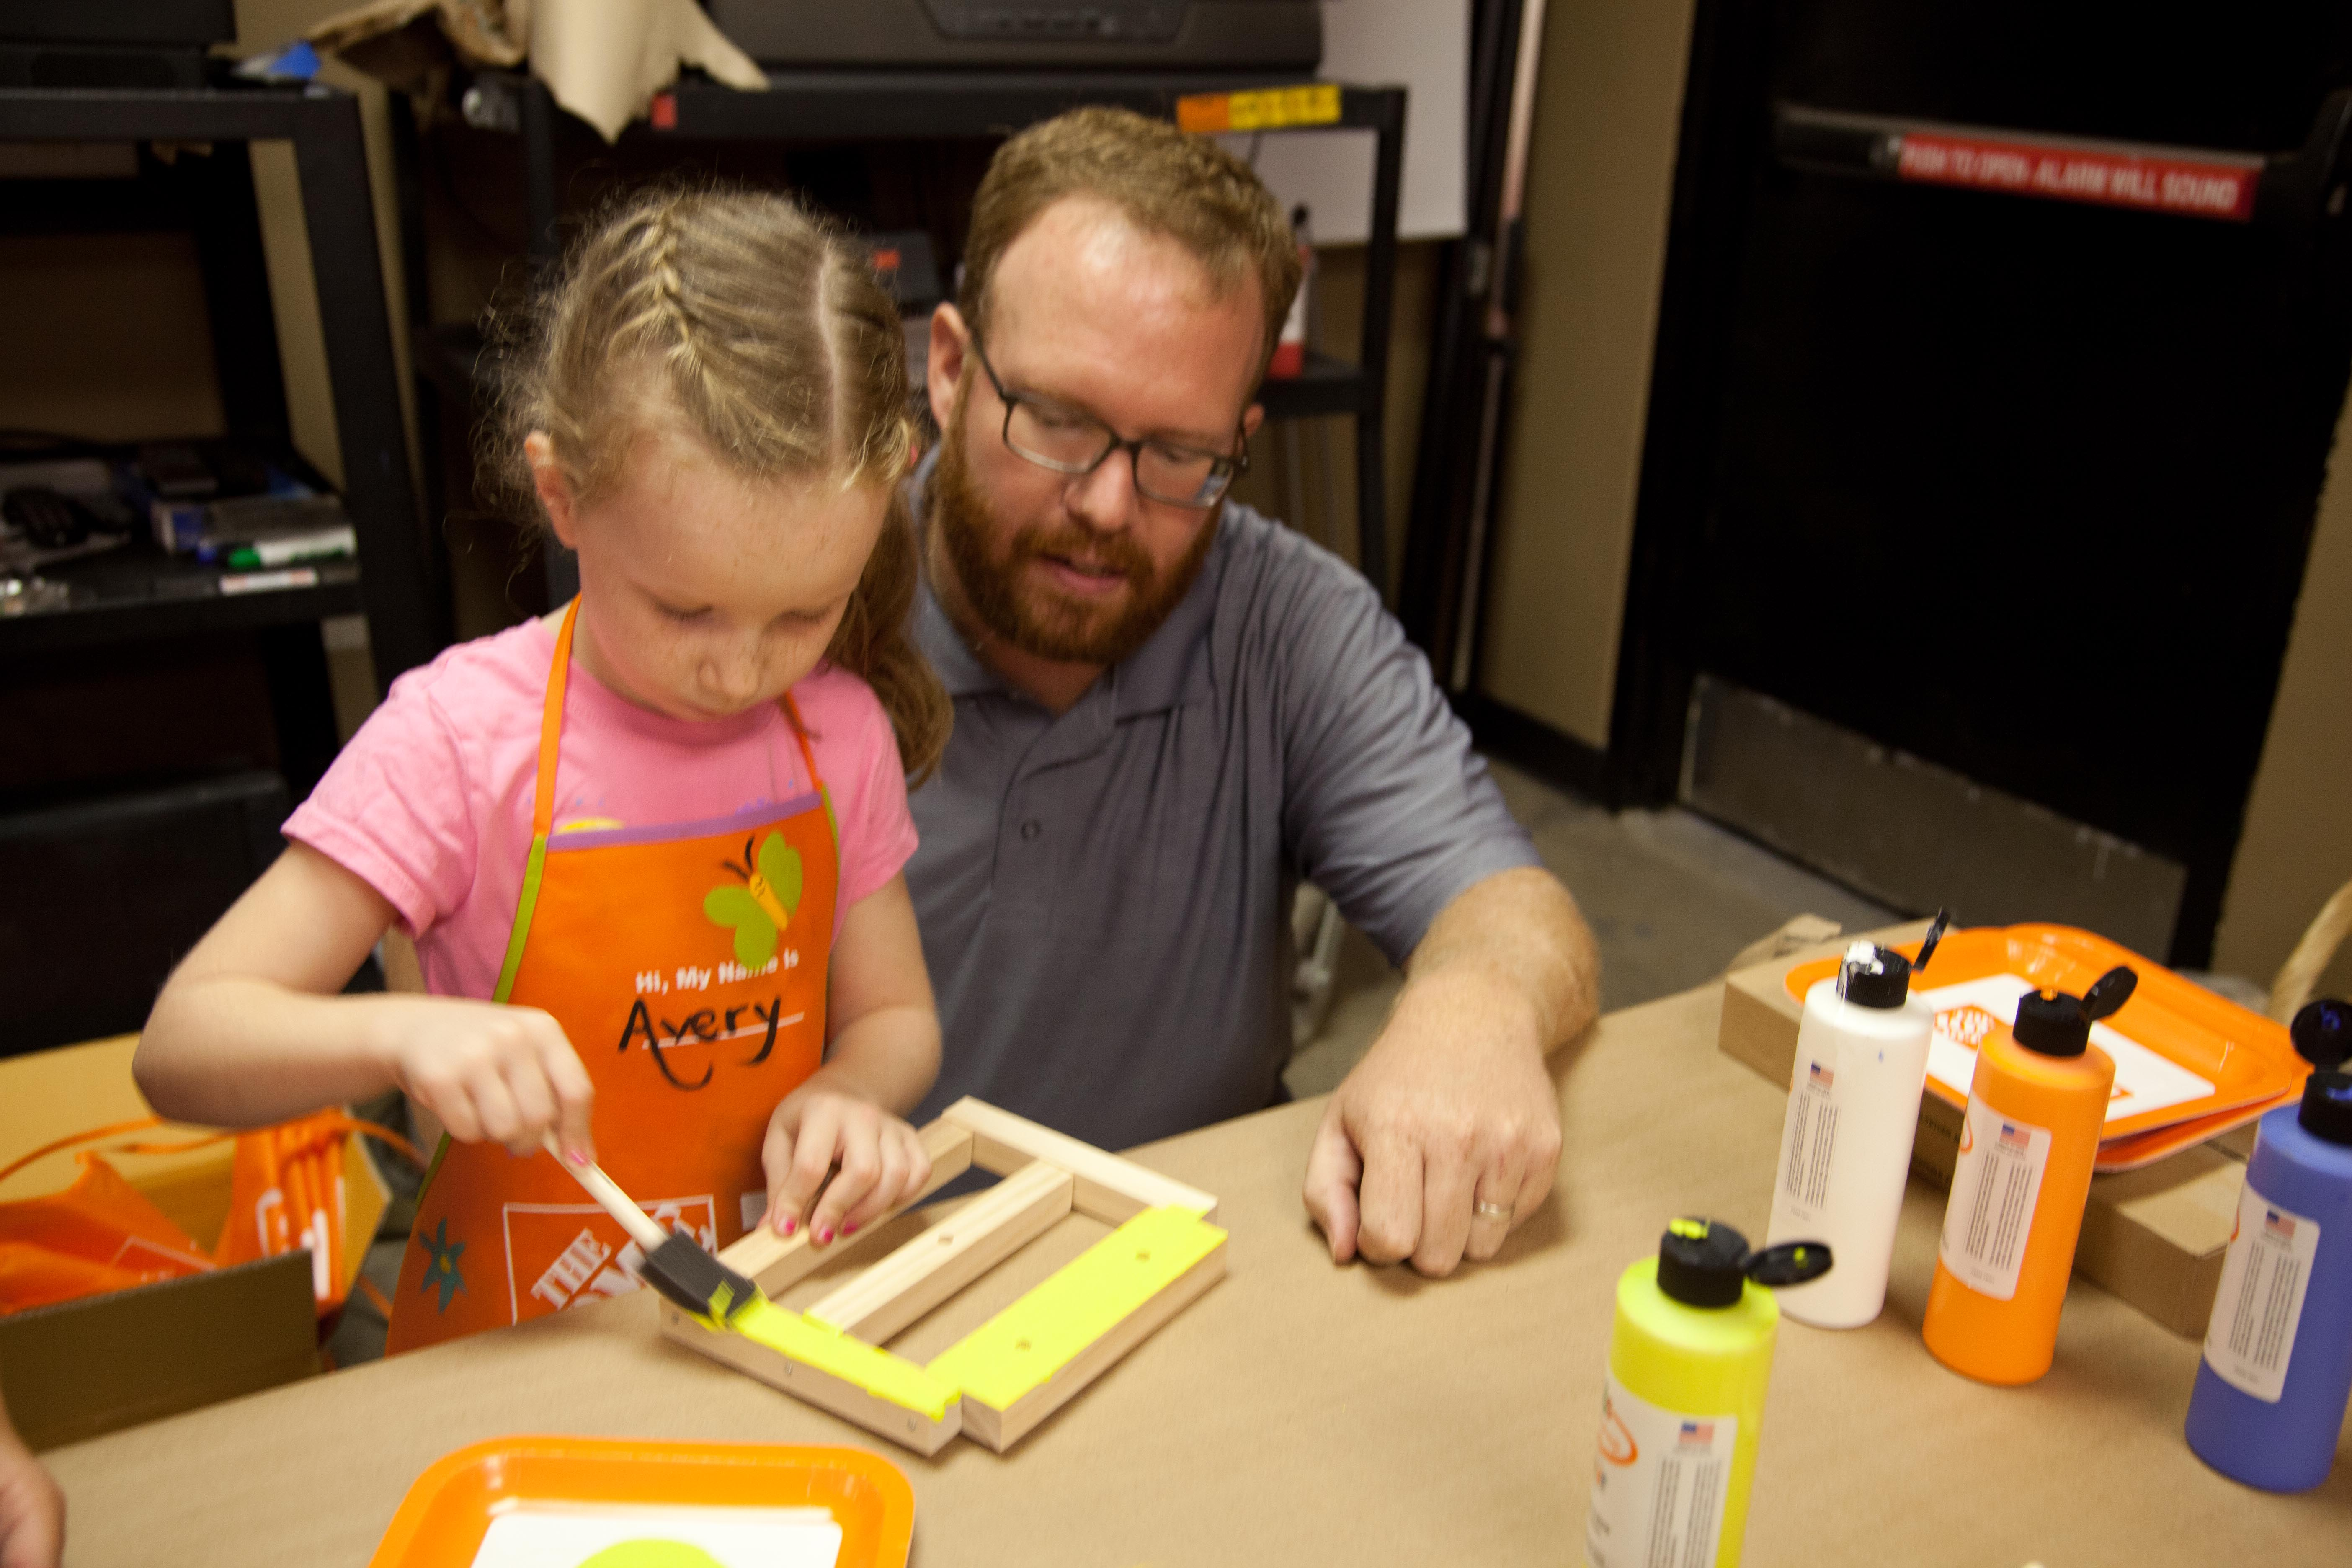 Home depot craft paint dad is learning for Kids crafts at home depot